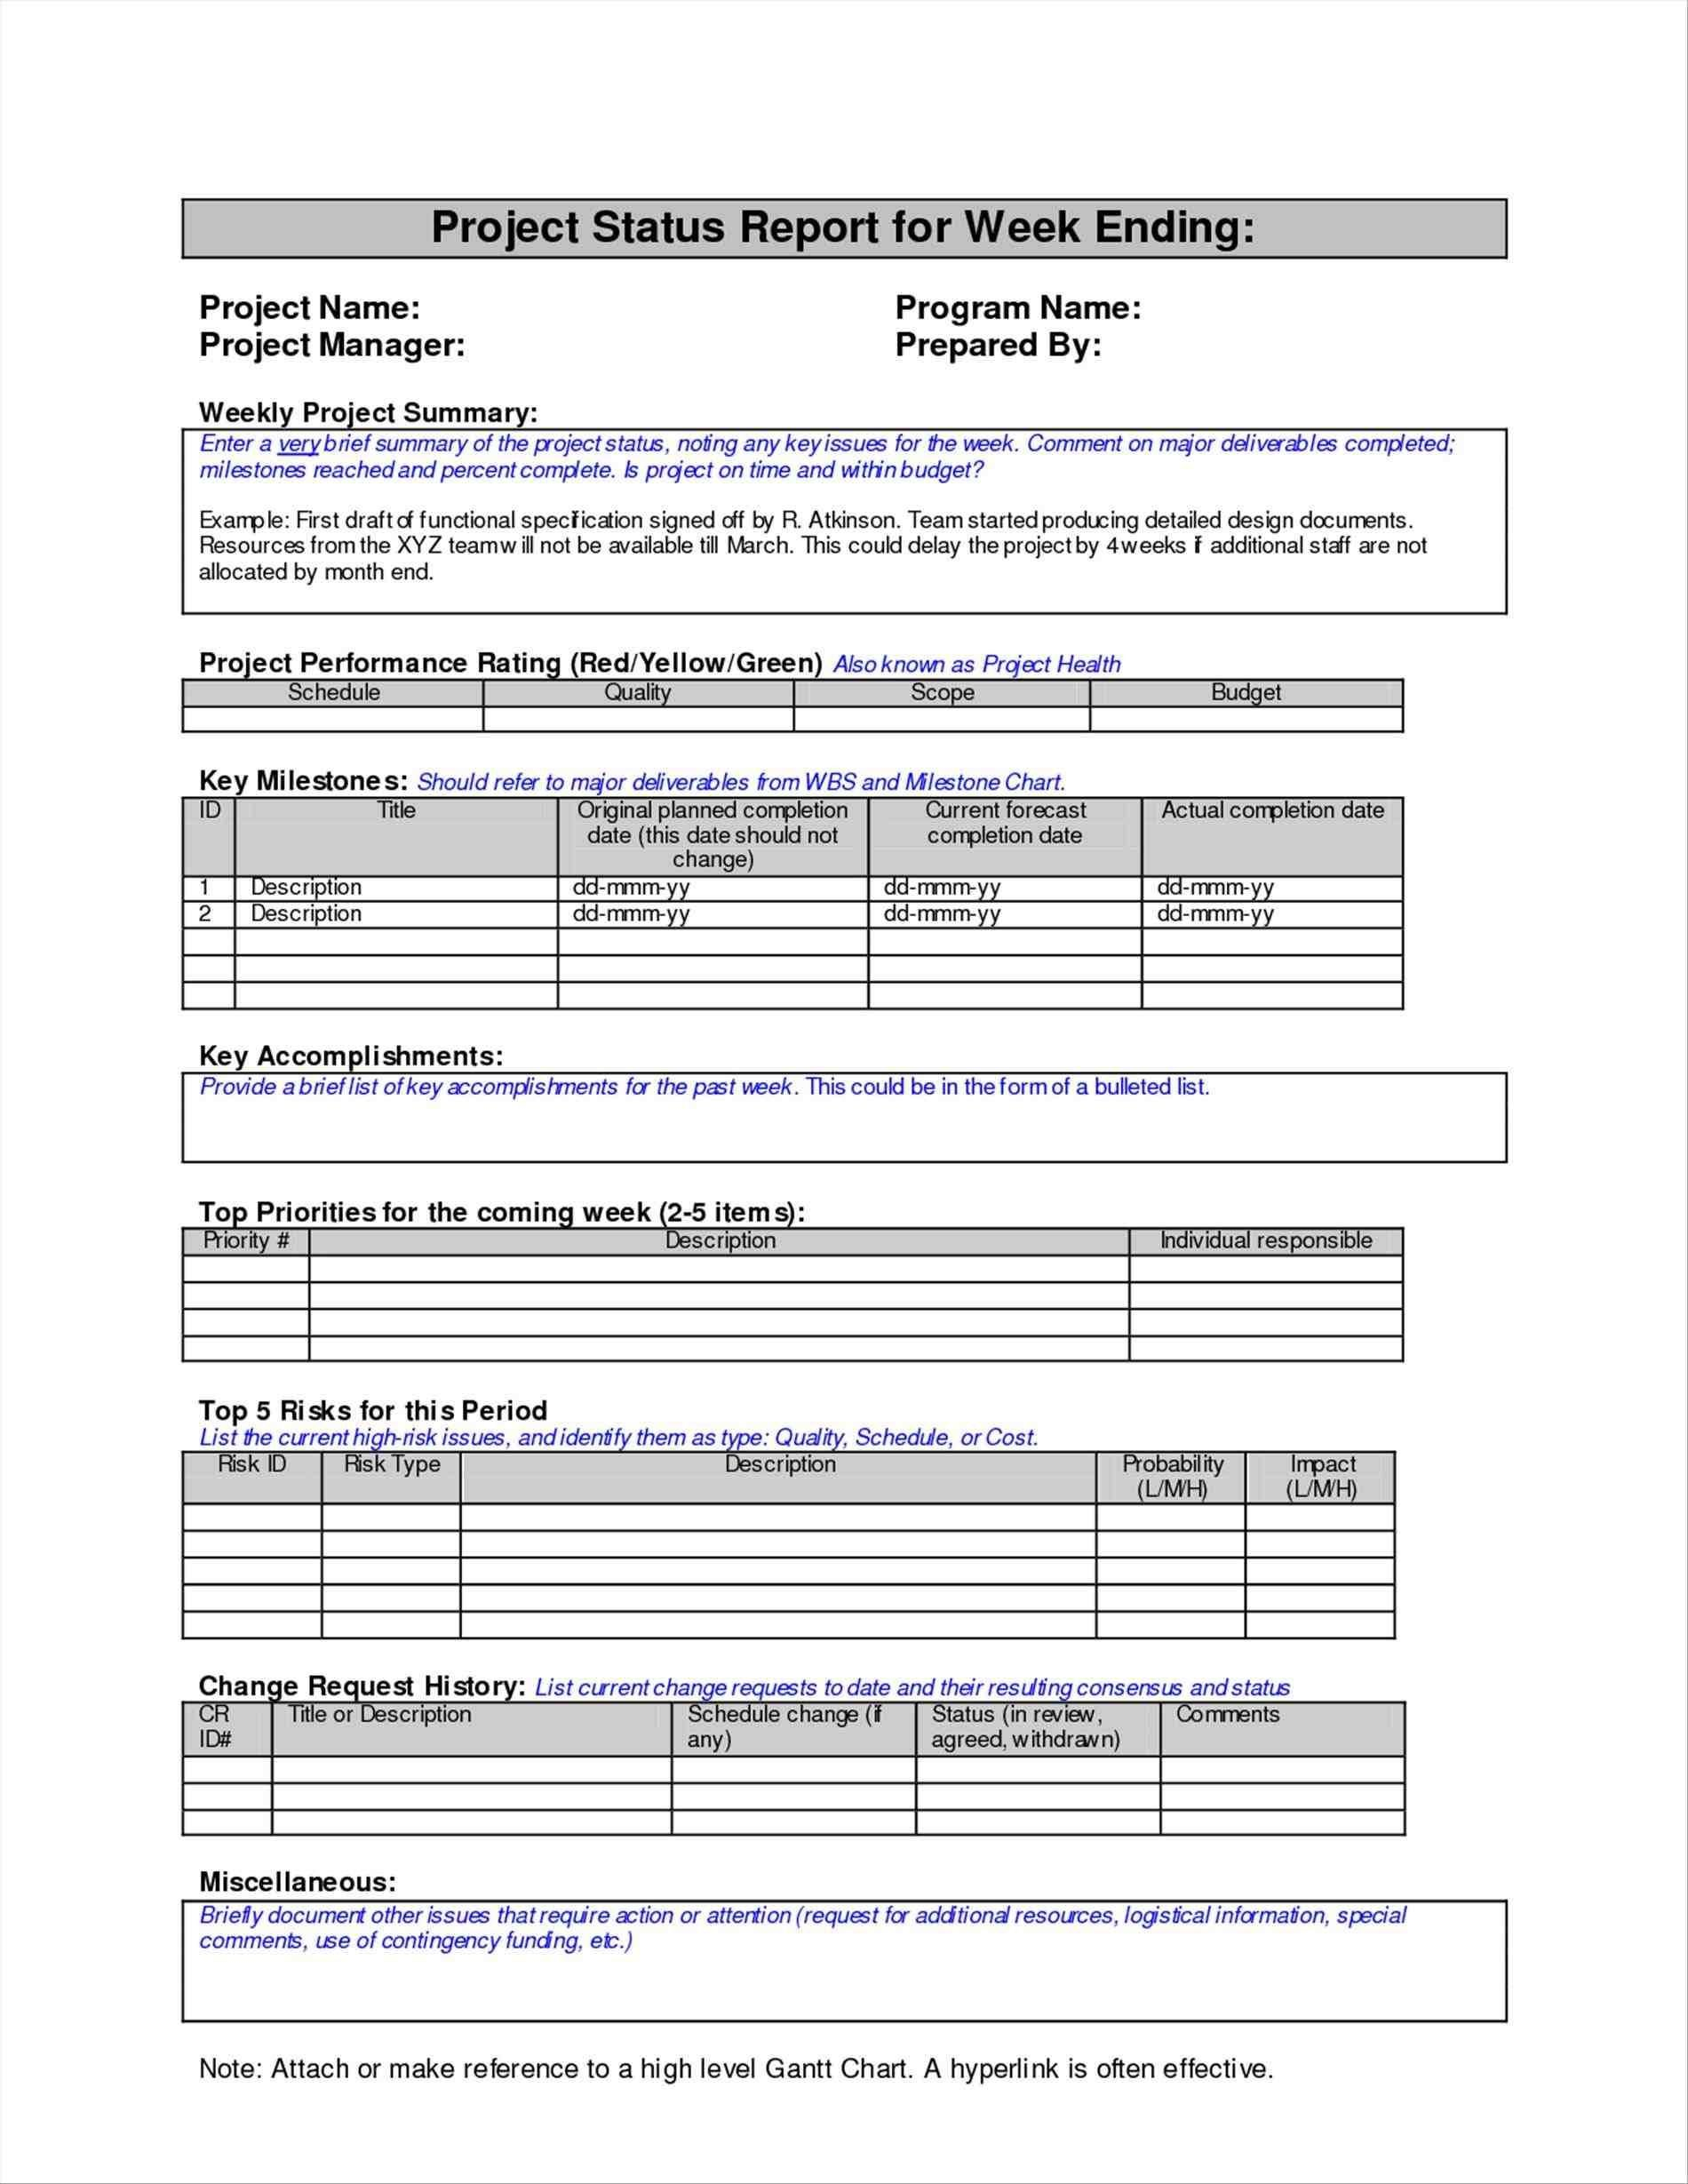 Interior Design Project Timeline  Project Timeline  Project Status Within Technical Service Report Template